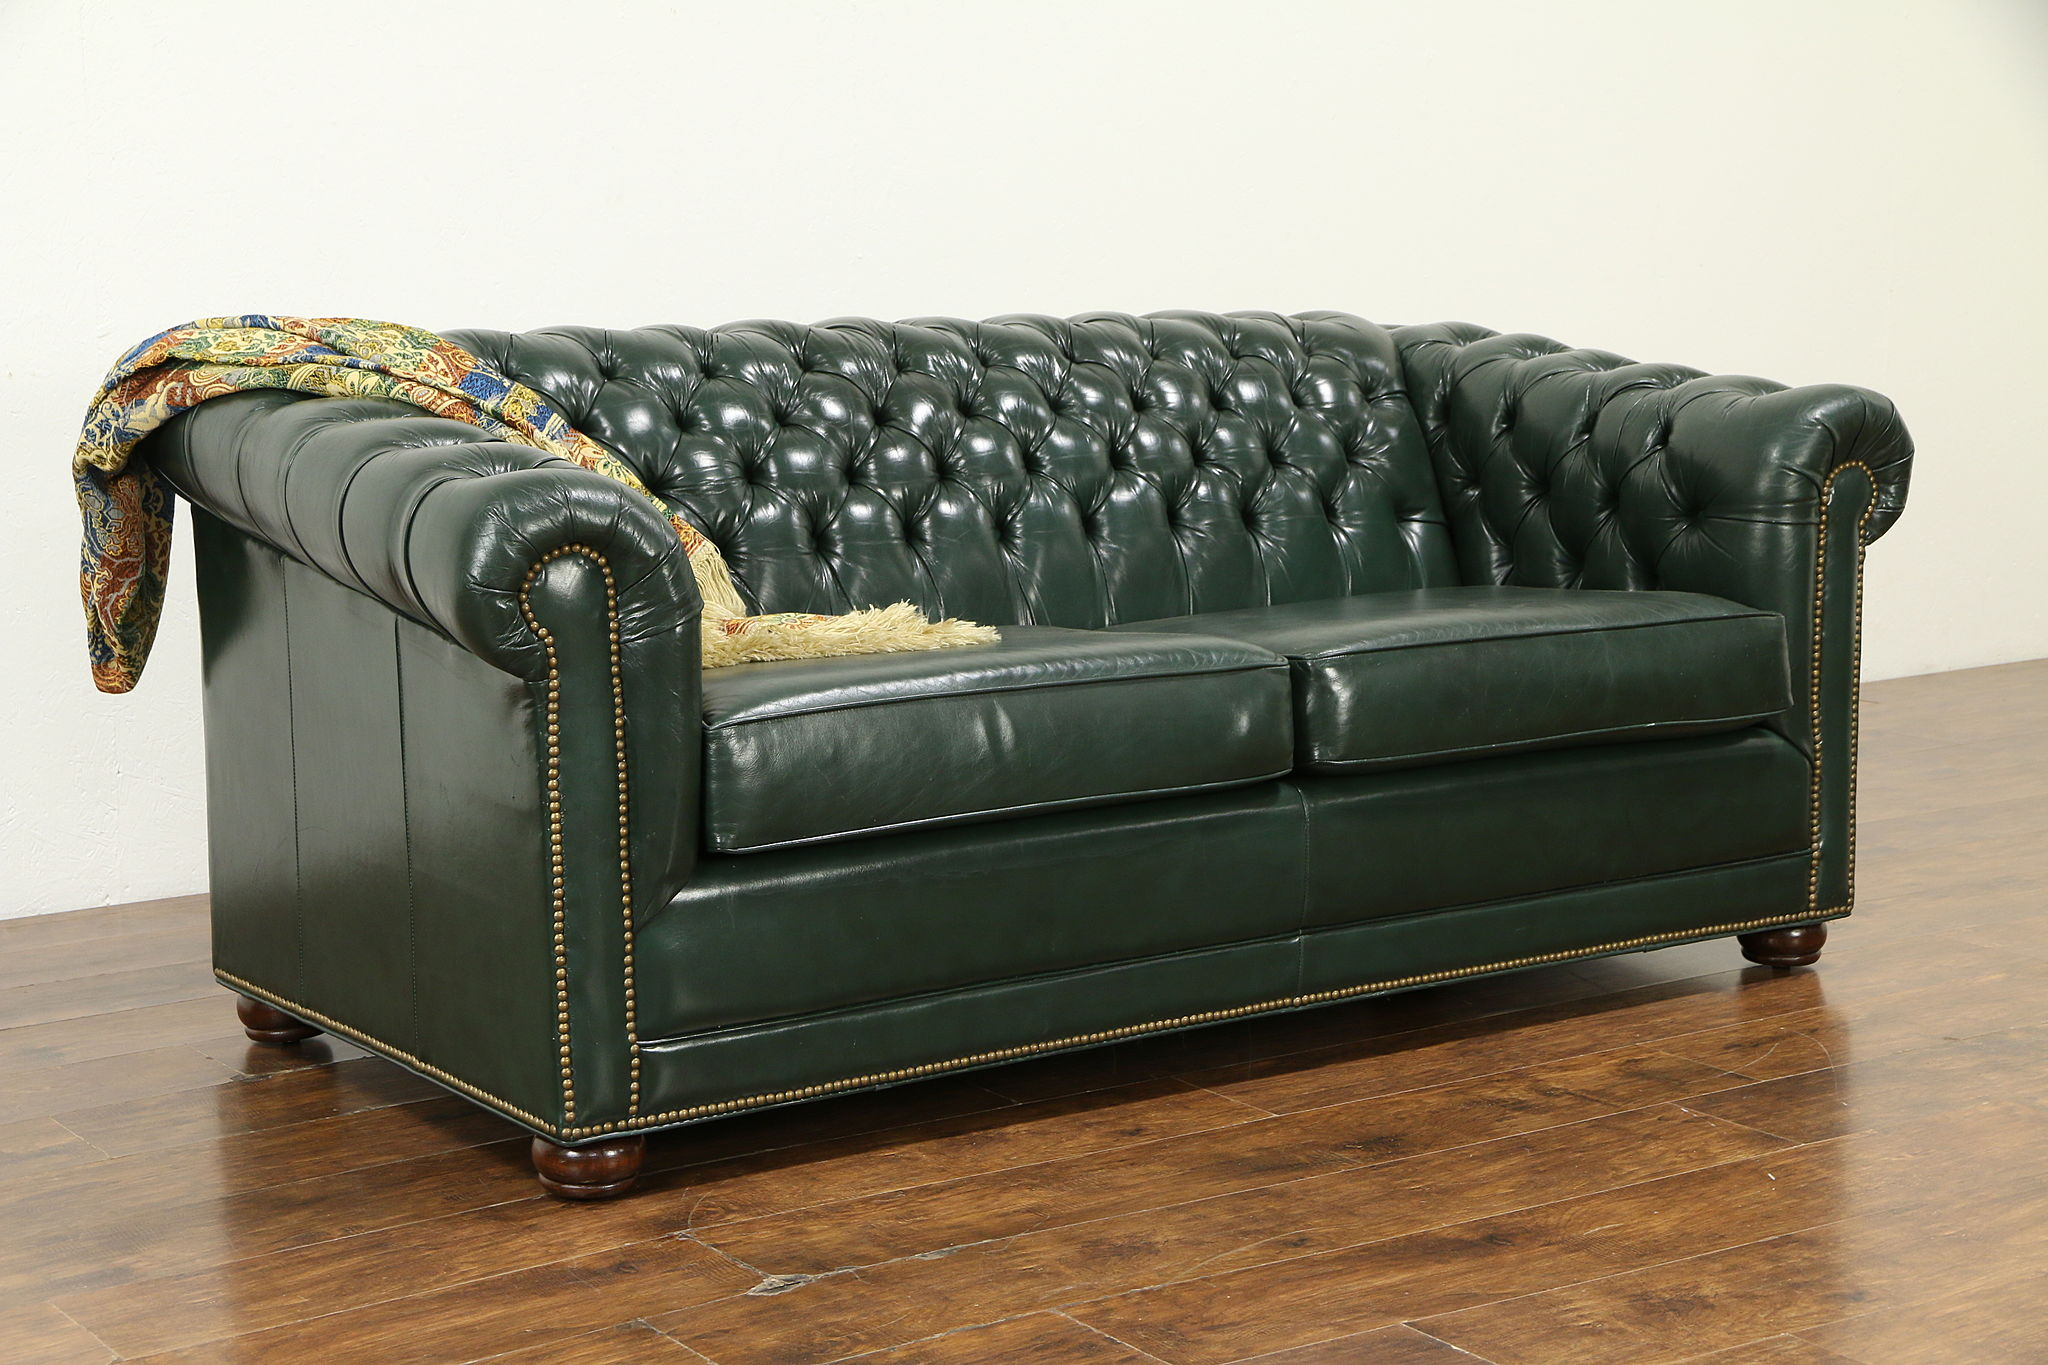 Chesterfield Green Tufted Leather